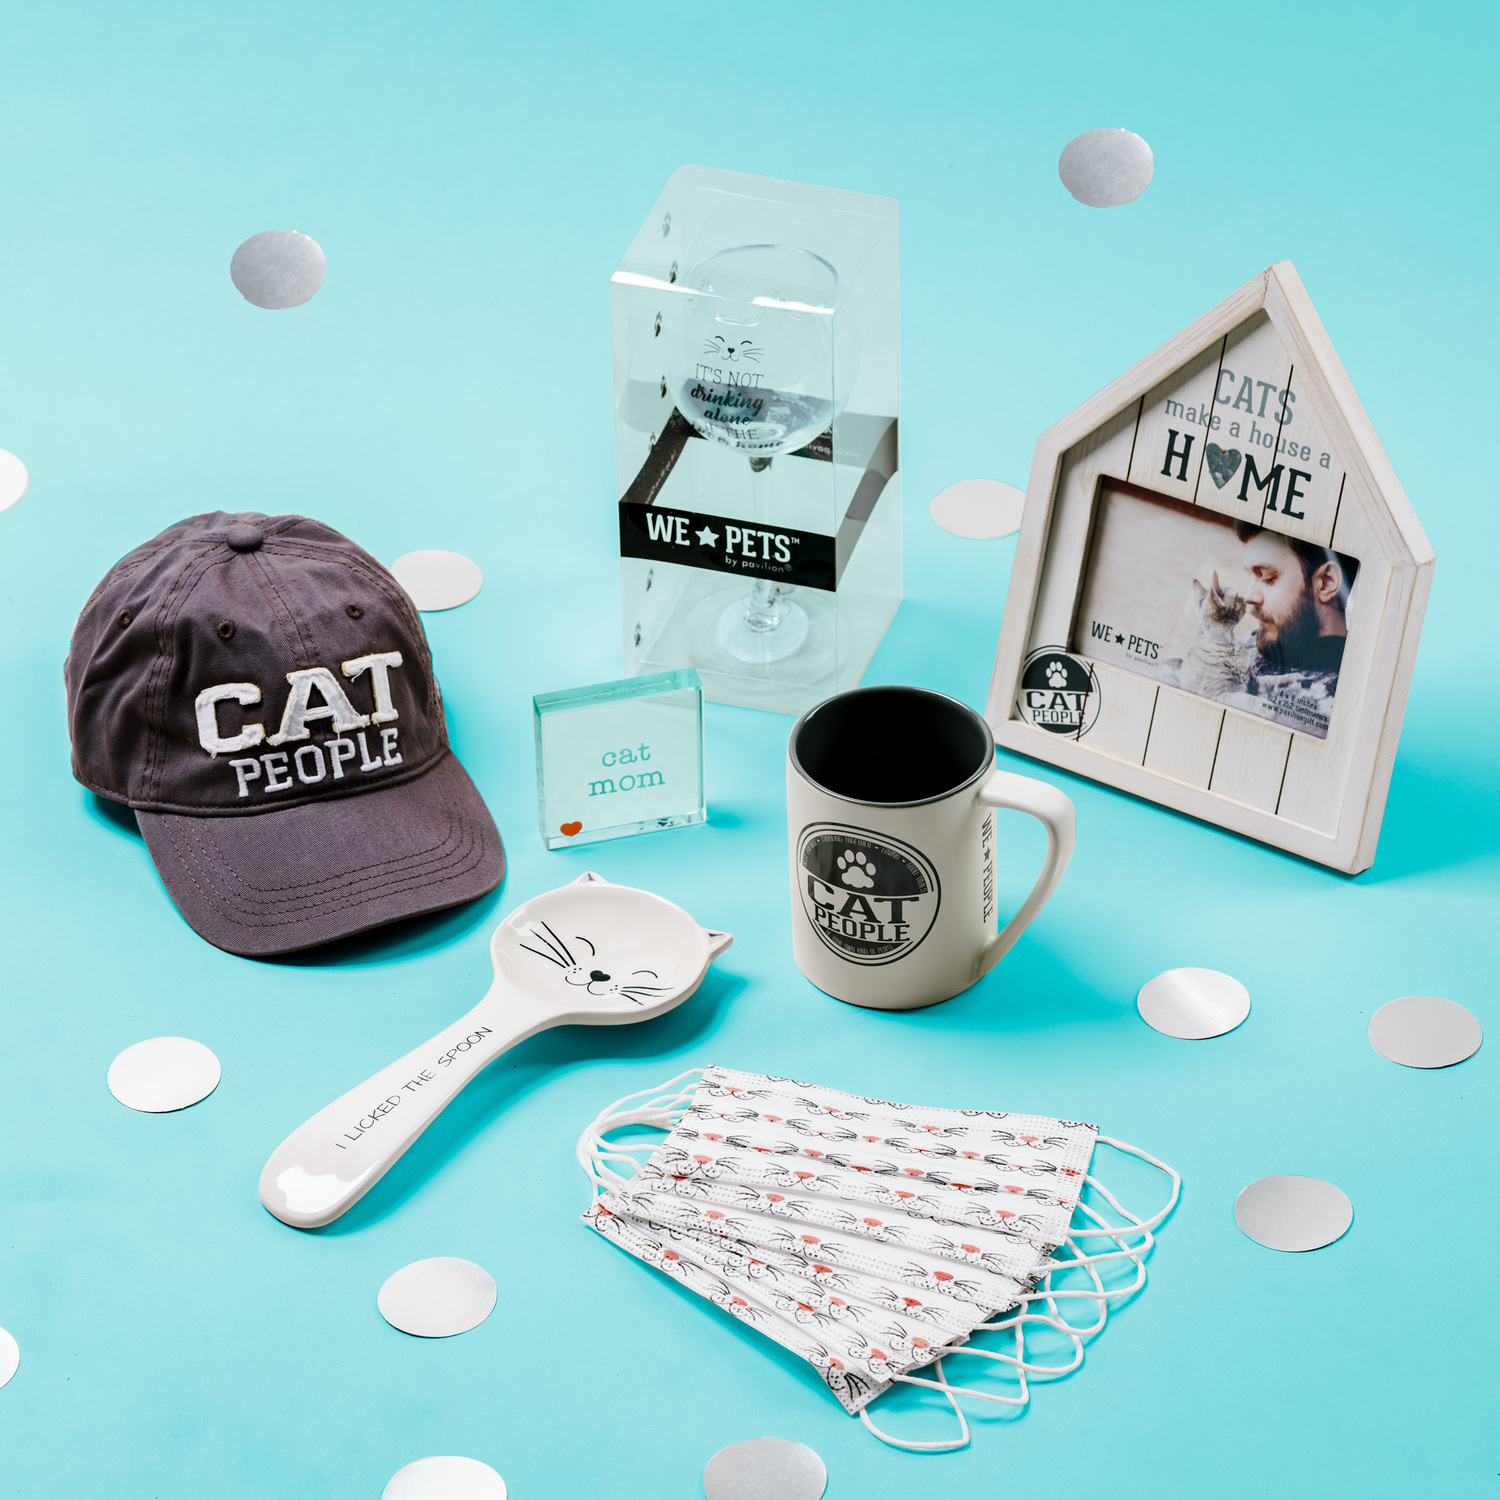 Cat Lover Gift Box by Packaged With Positivity - Cat Lover Gift Box - $115.00 Value